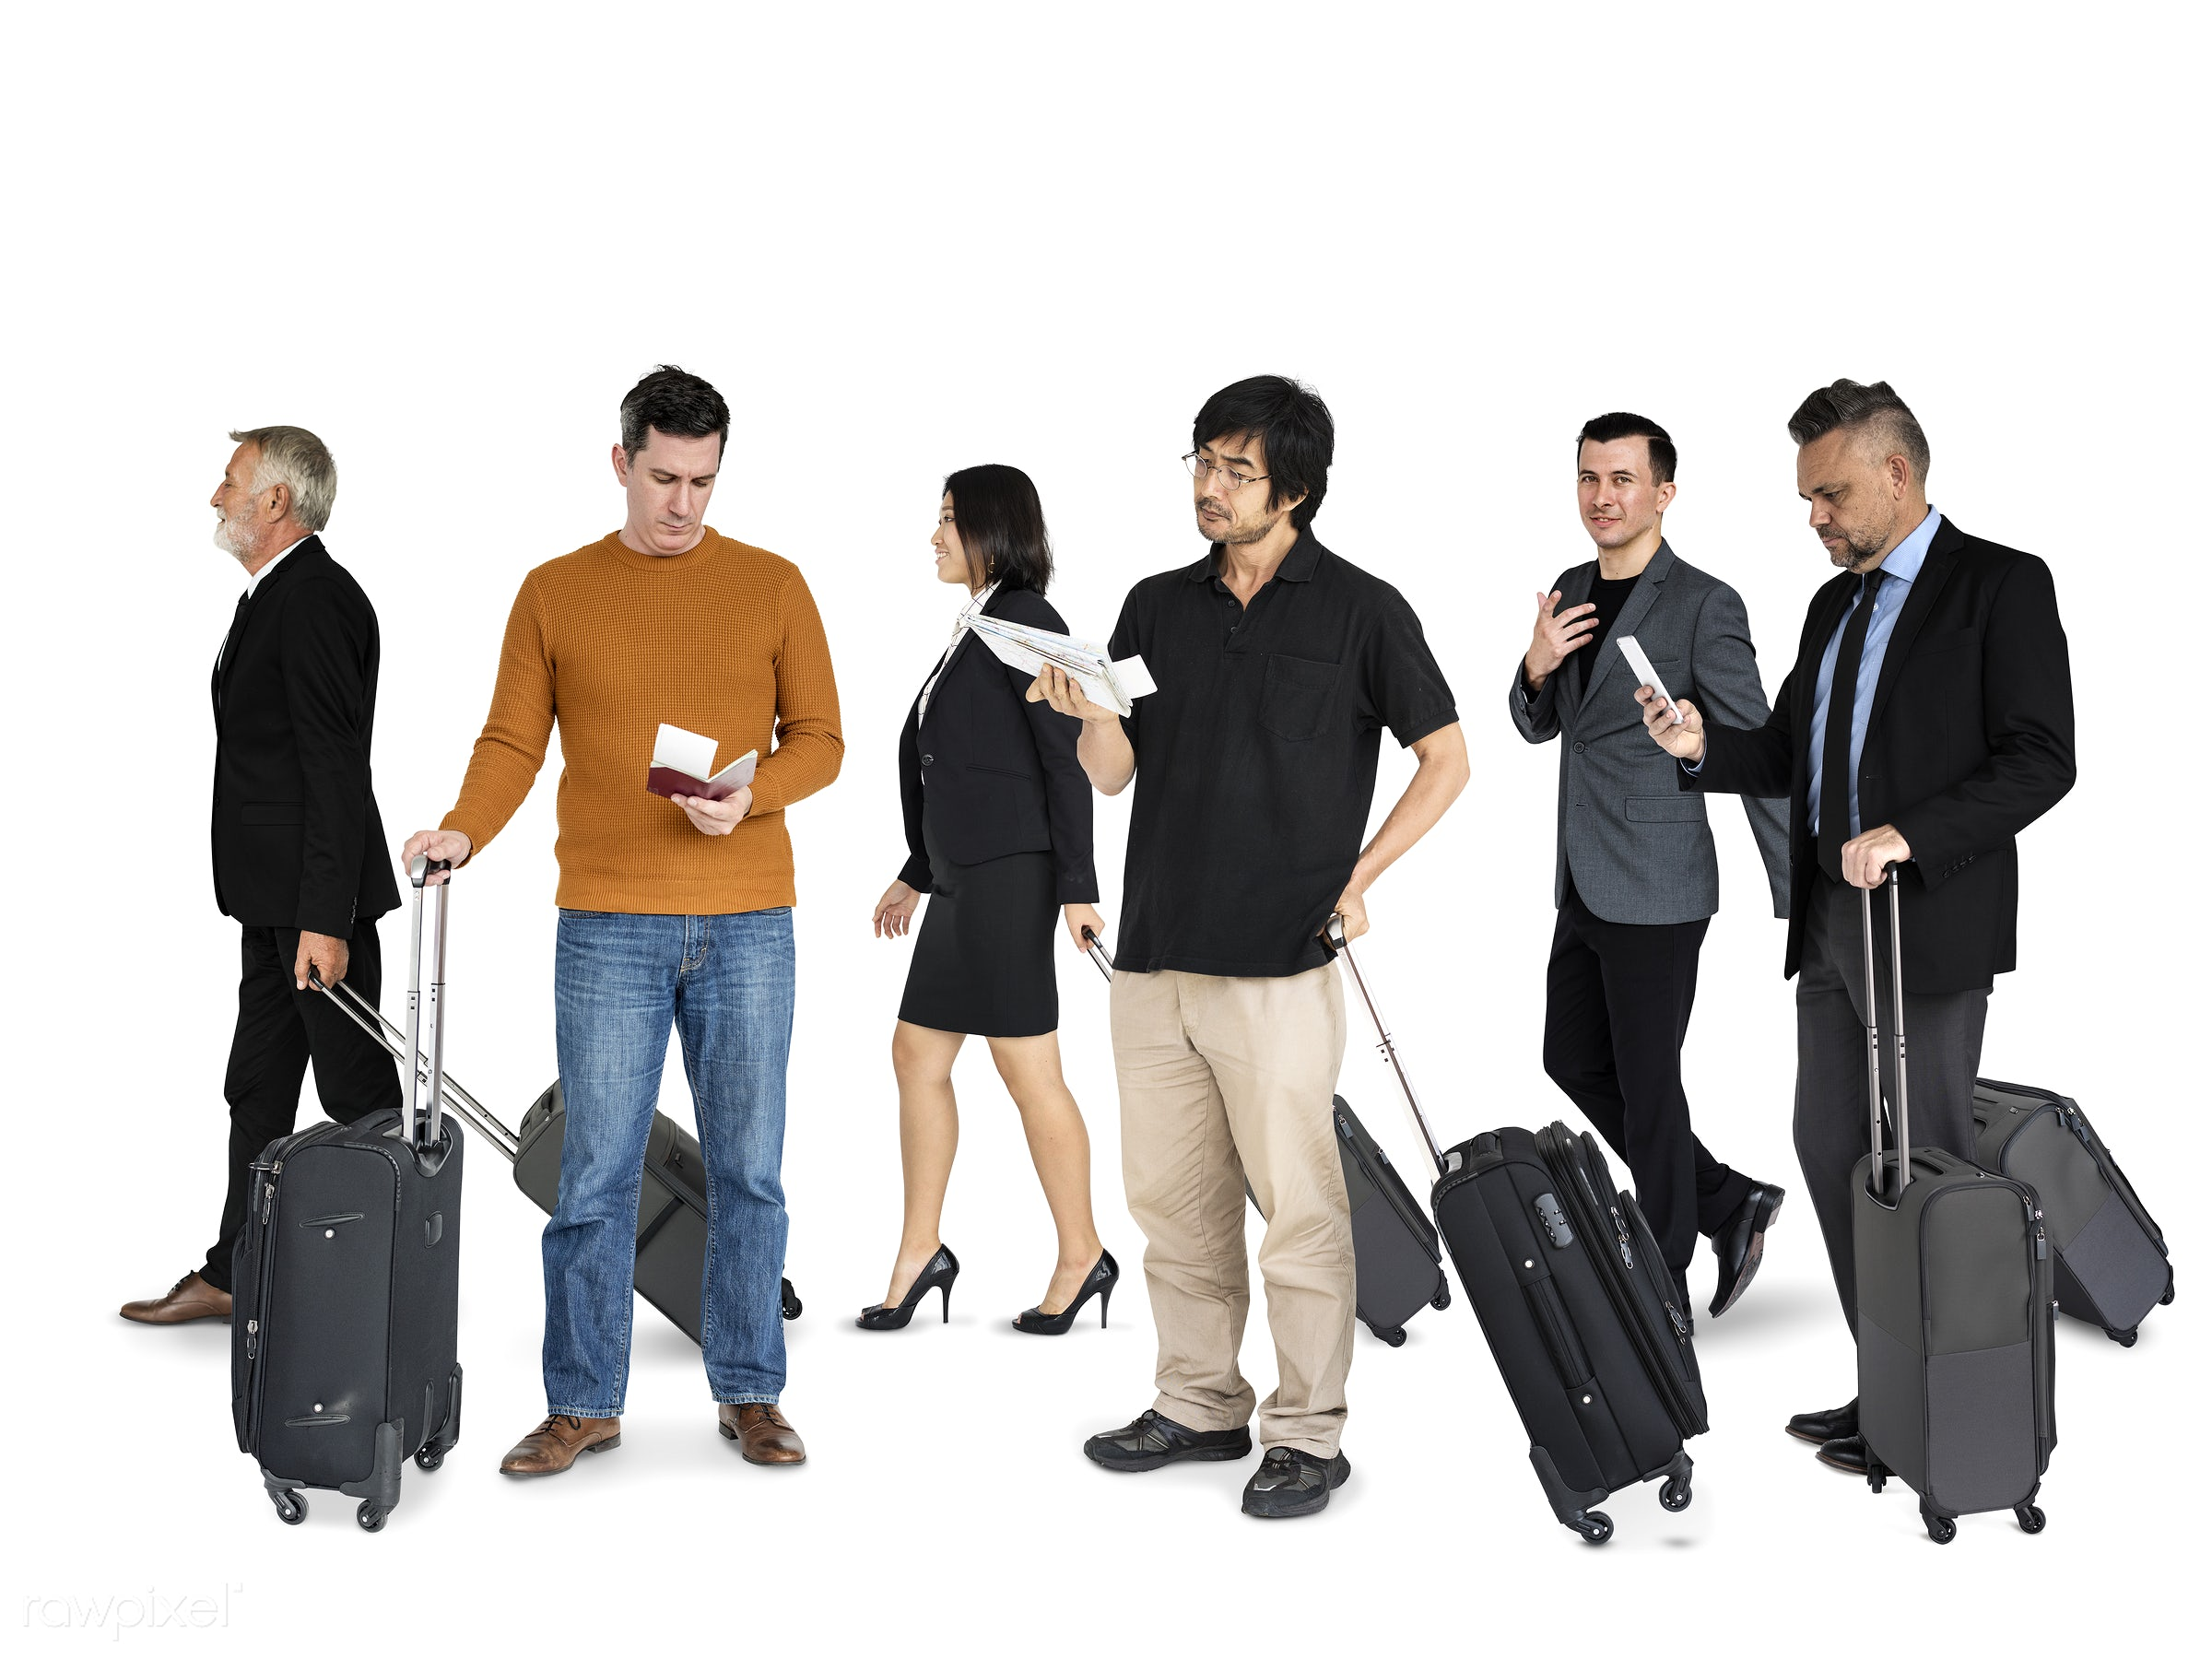 abroad, adult, asian, away, bag, business, businessmen, candid, casual, caucasian, diverse, diversity, ethnicity, expression...